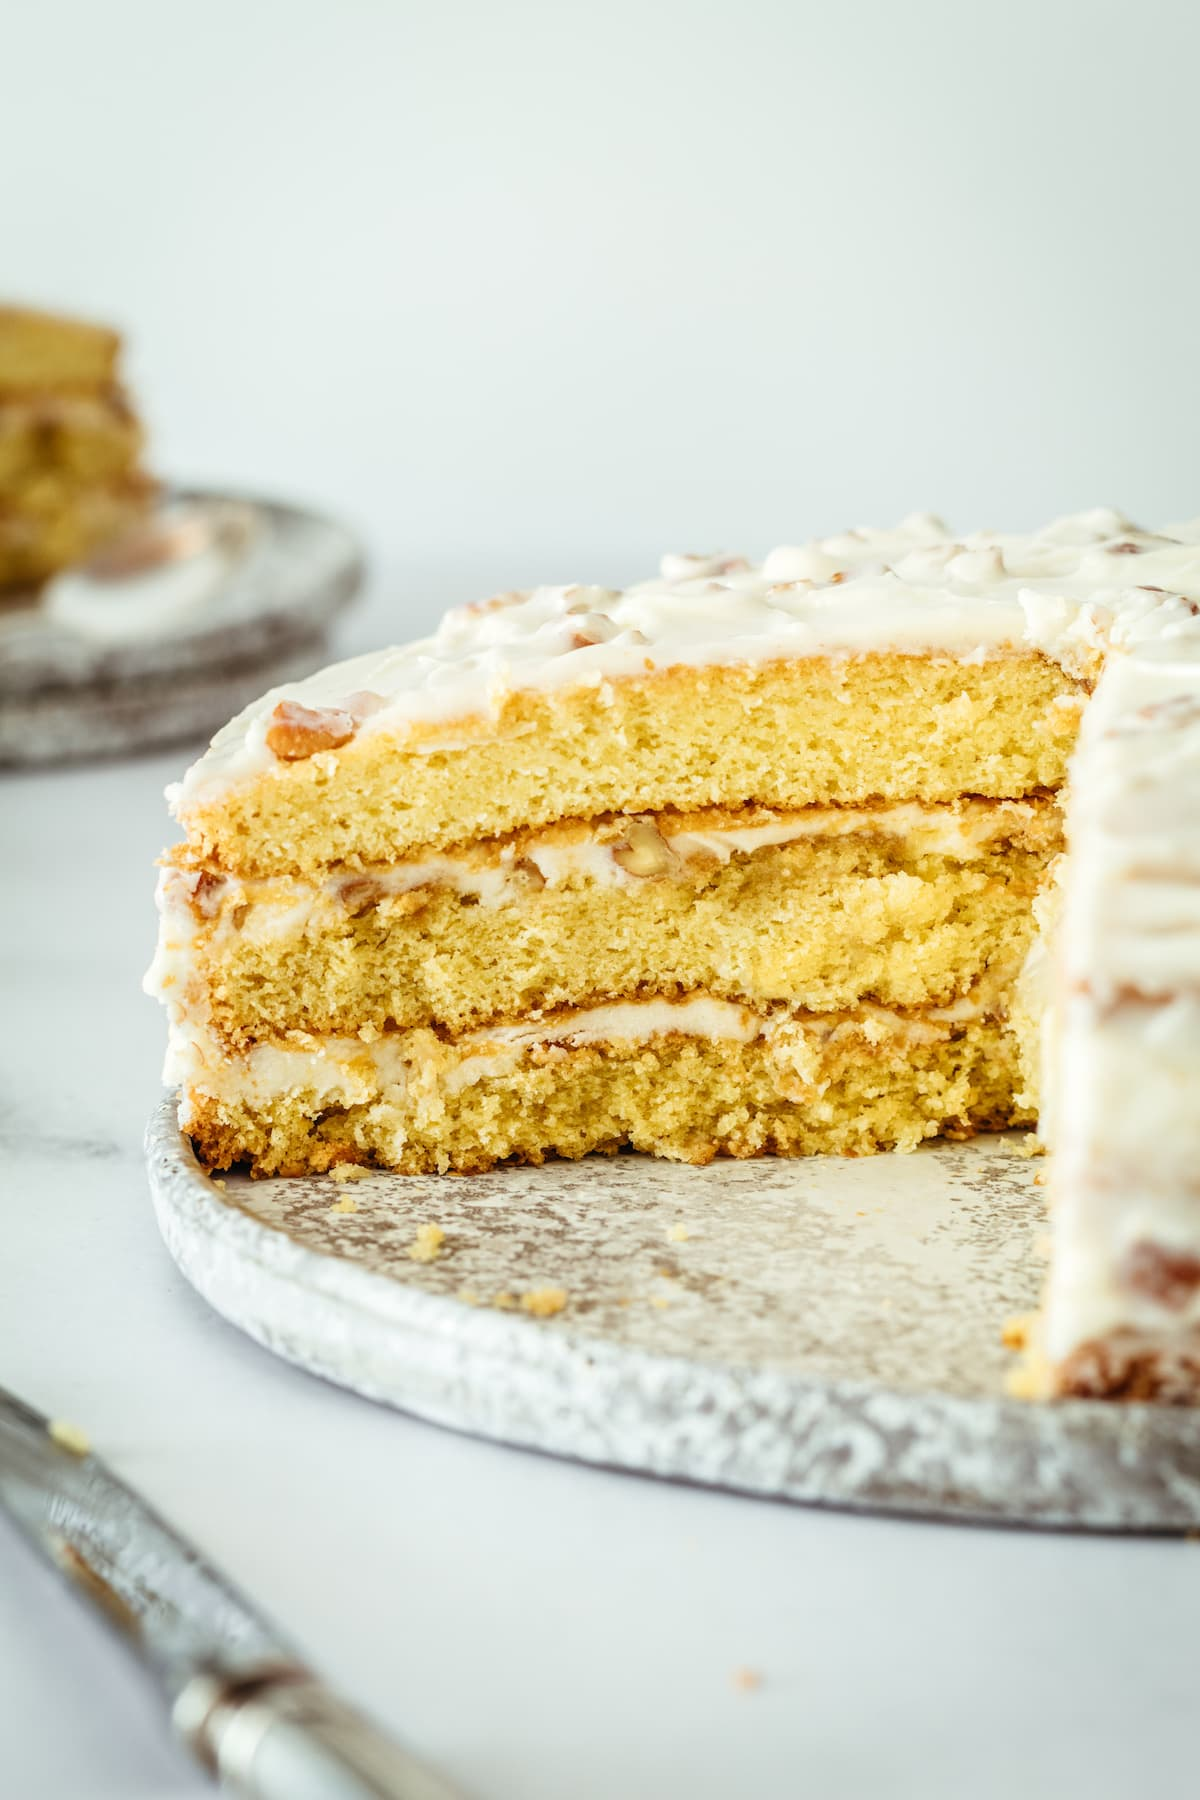 Italian Cream Cake on cake plate with two slices removed, showing layers